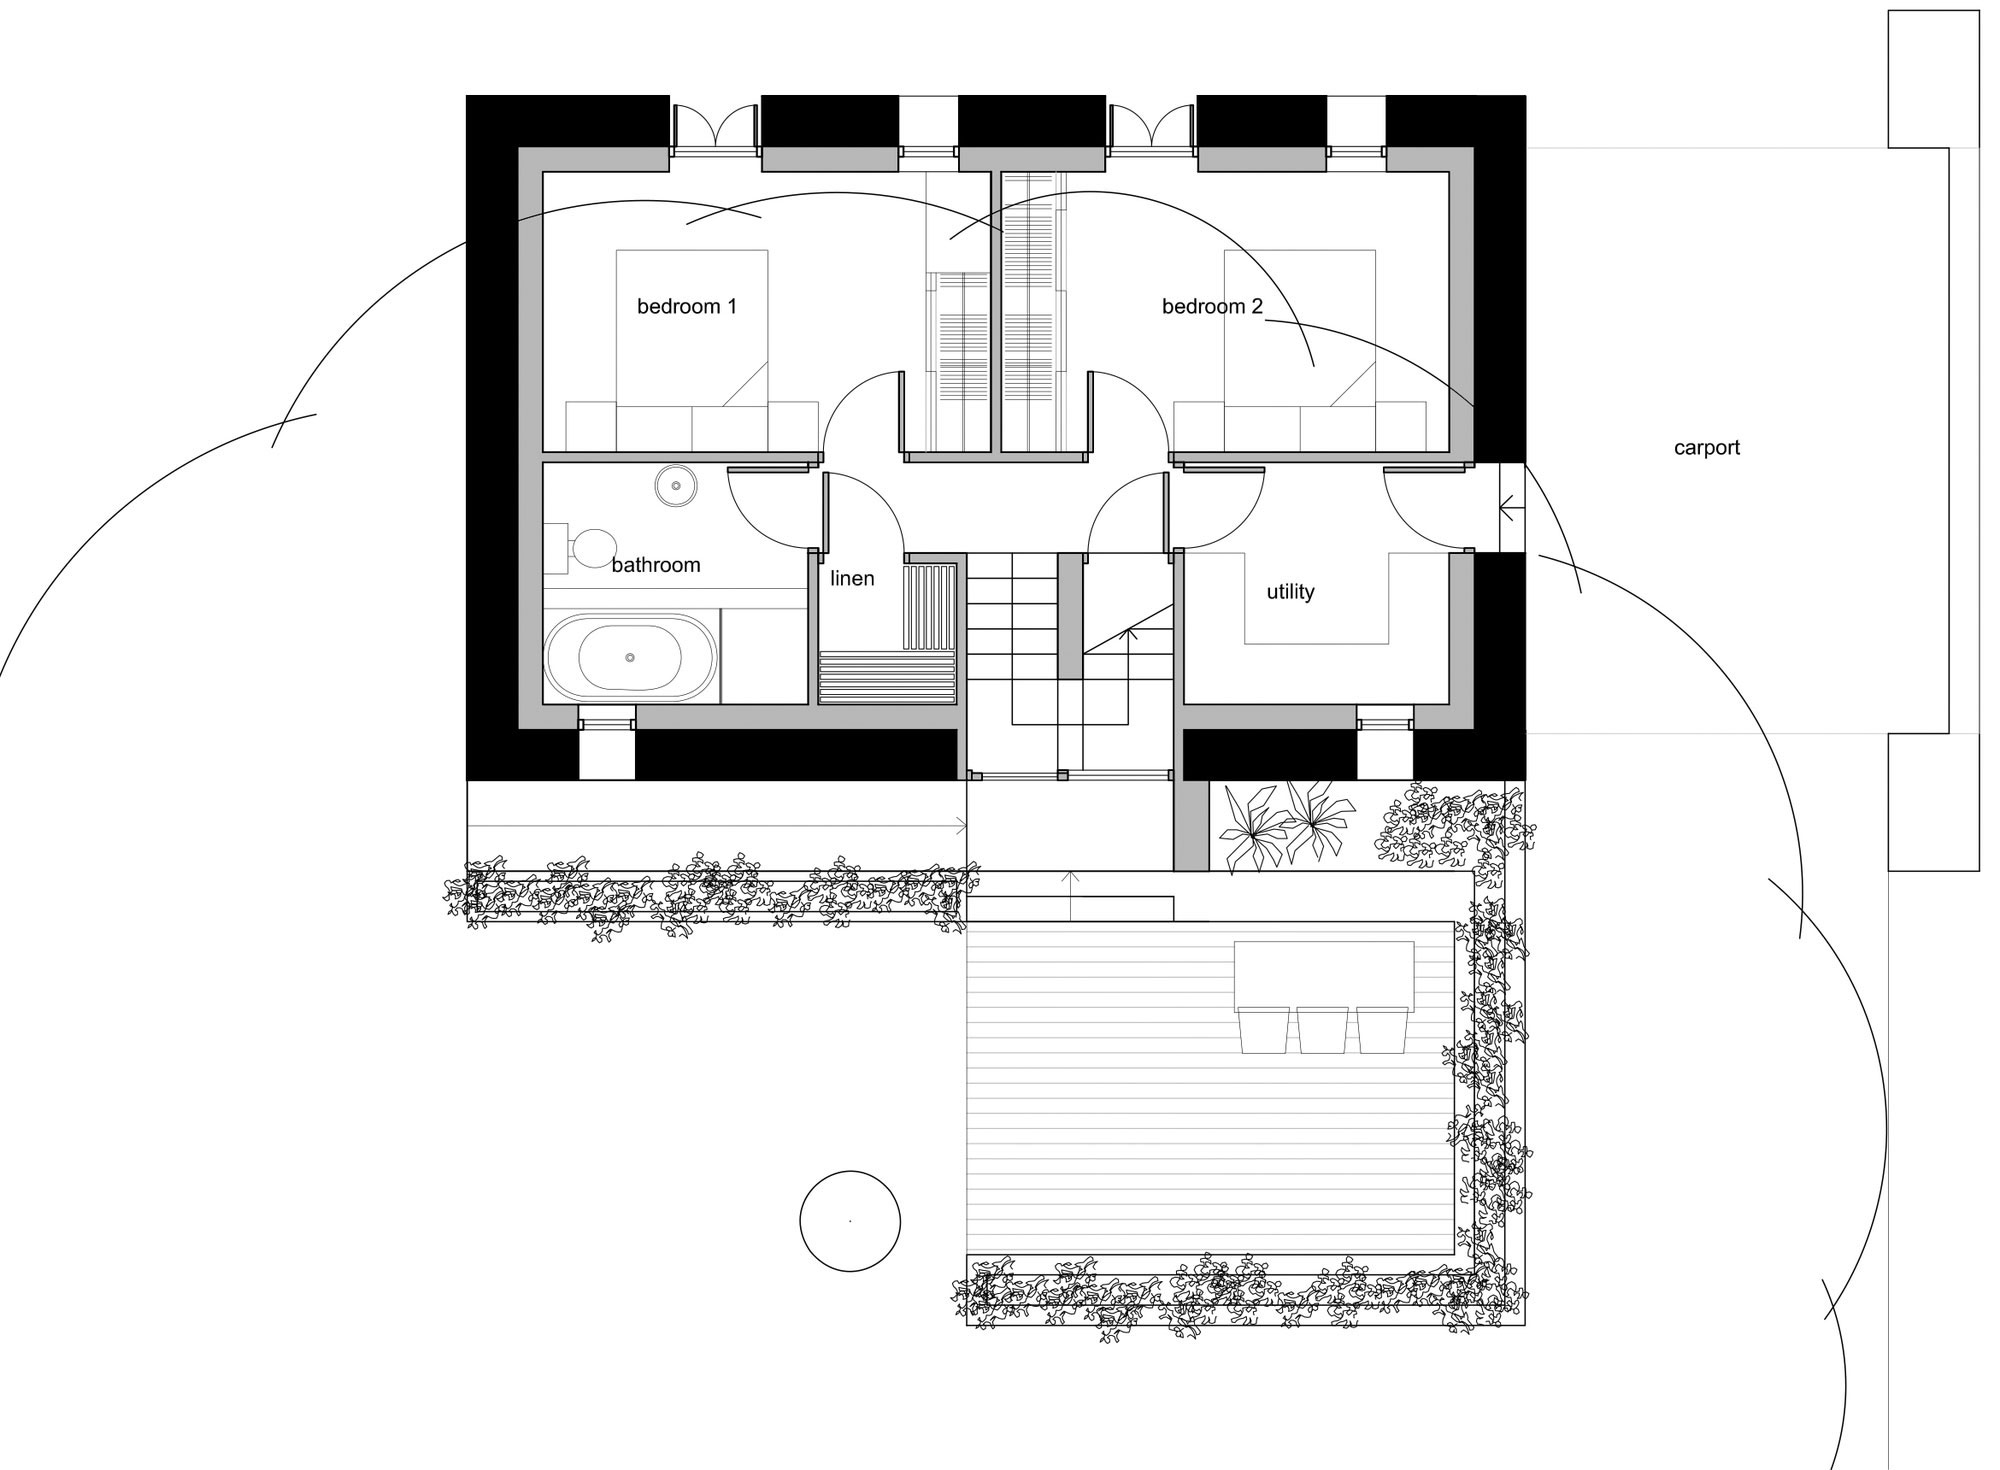 First Floor Plan, Barn Conversion in Broughshane, Northern Ireland